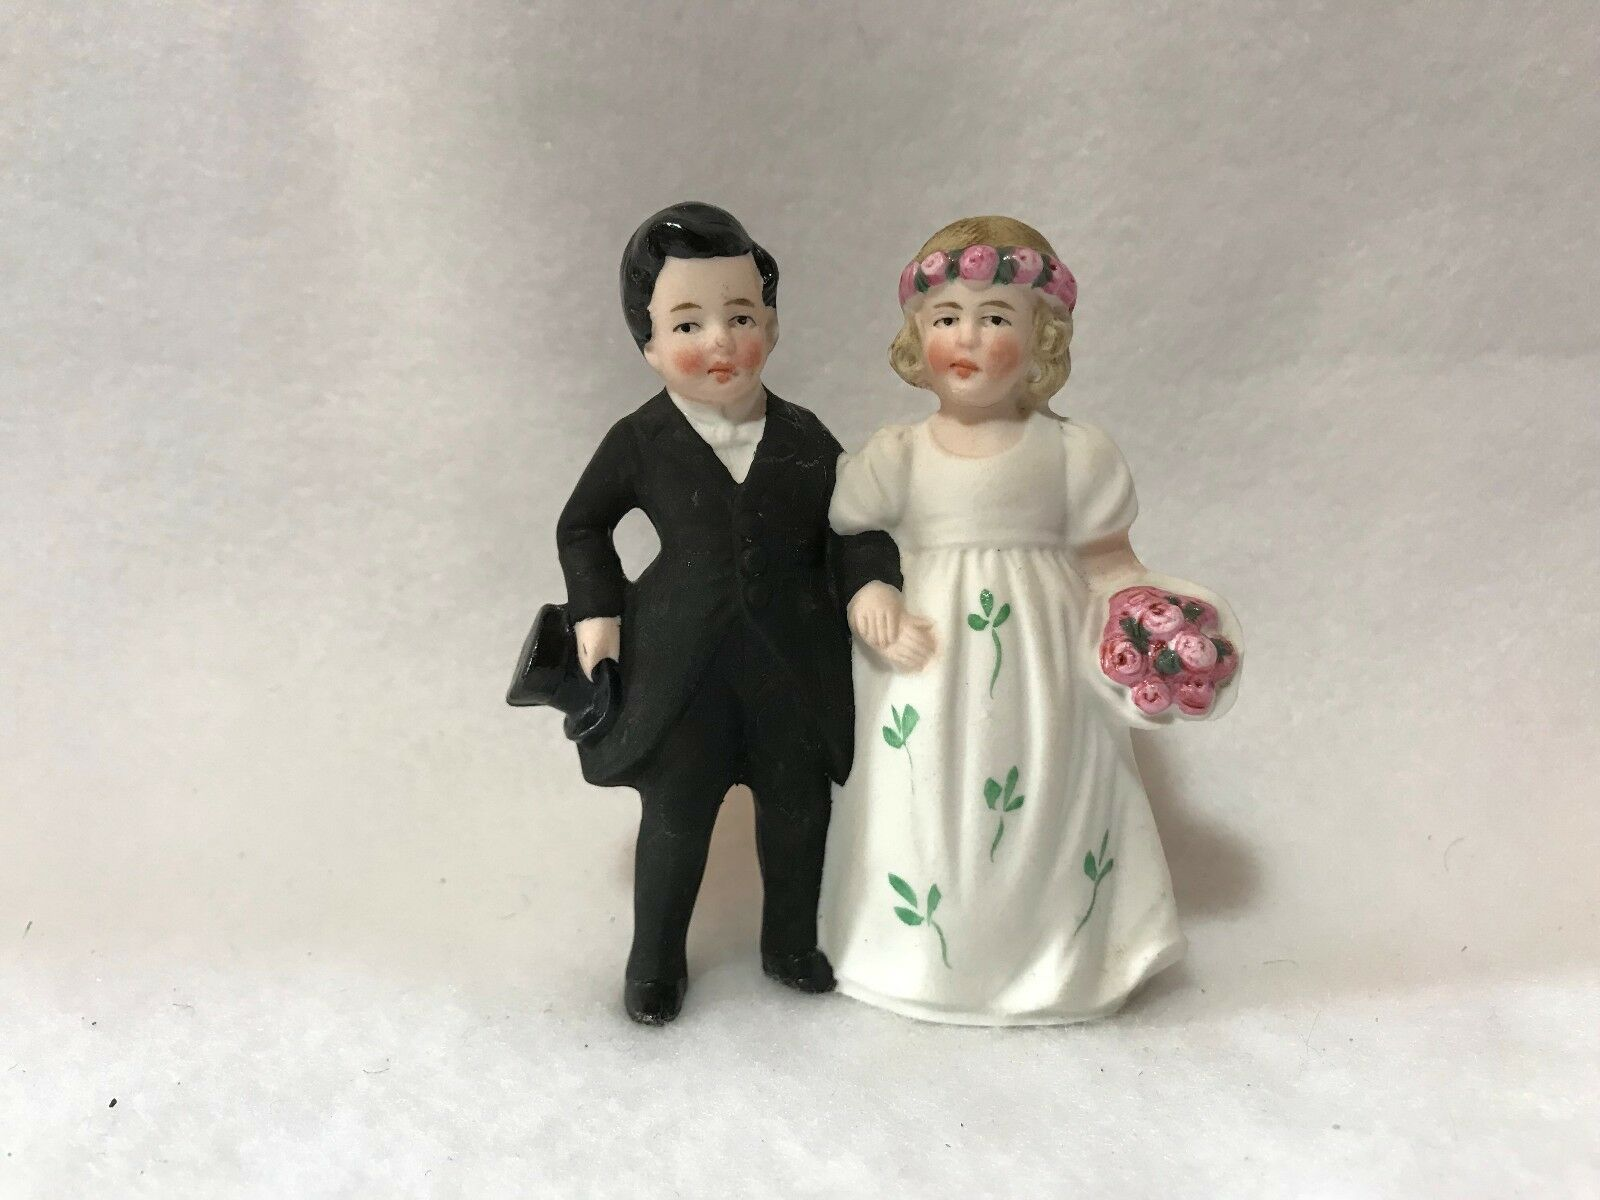 Vintage German Bisque Hertwig & Co. Bride & Groom Wedding Cake Topper 3